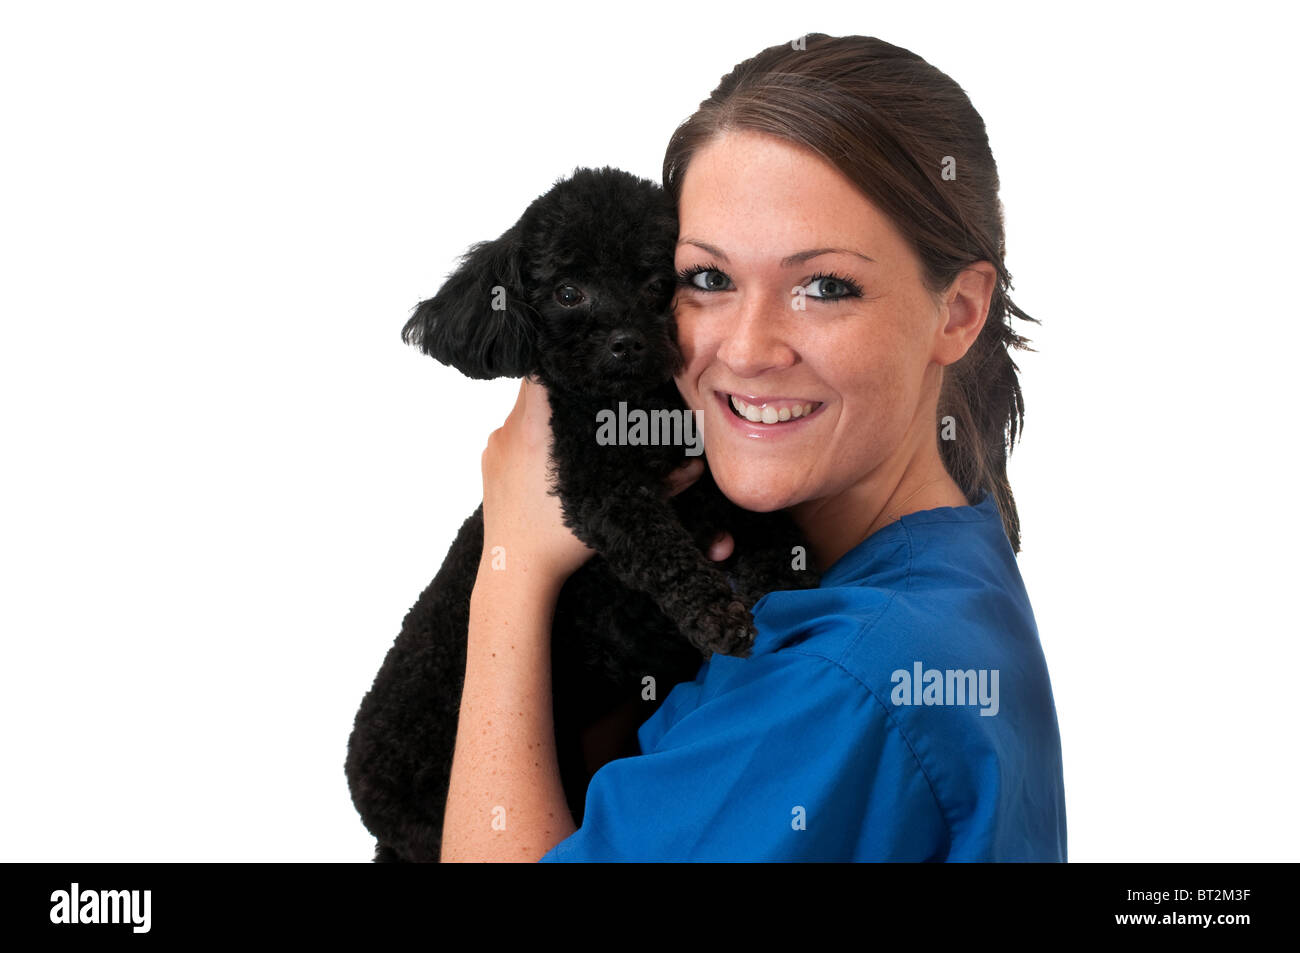 Veterinary assistant holding pet poodle isolated on white background with copy space. - Stock Image